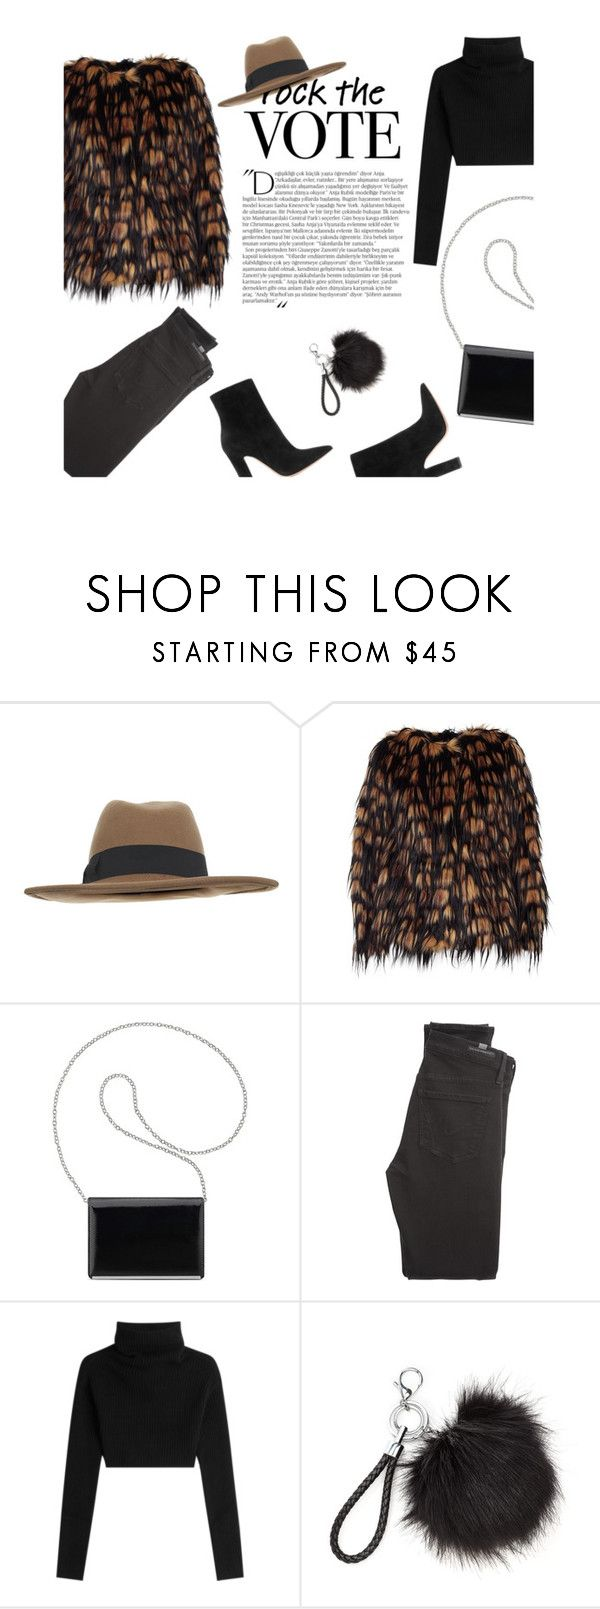 """Cozy Vote"" by modernbovary ❤ liked on Polyvore featuring Balmain, Miss Selfridge, Dries Van Noten, Nine West, Citizens of Humanity, Valentino, Gianvito Rossi, polyvoreeditorial, polyvorecontest and rockthevote"